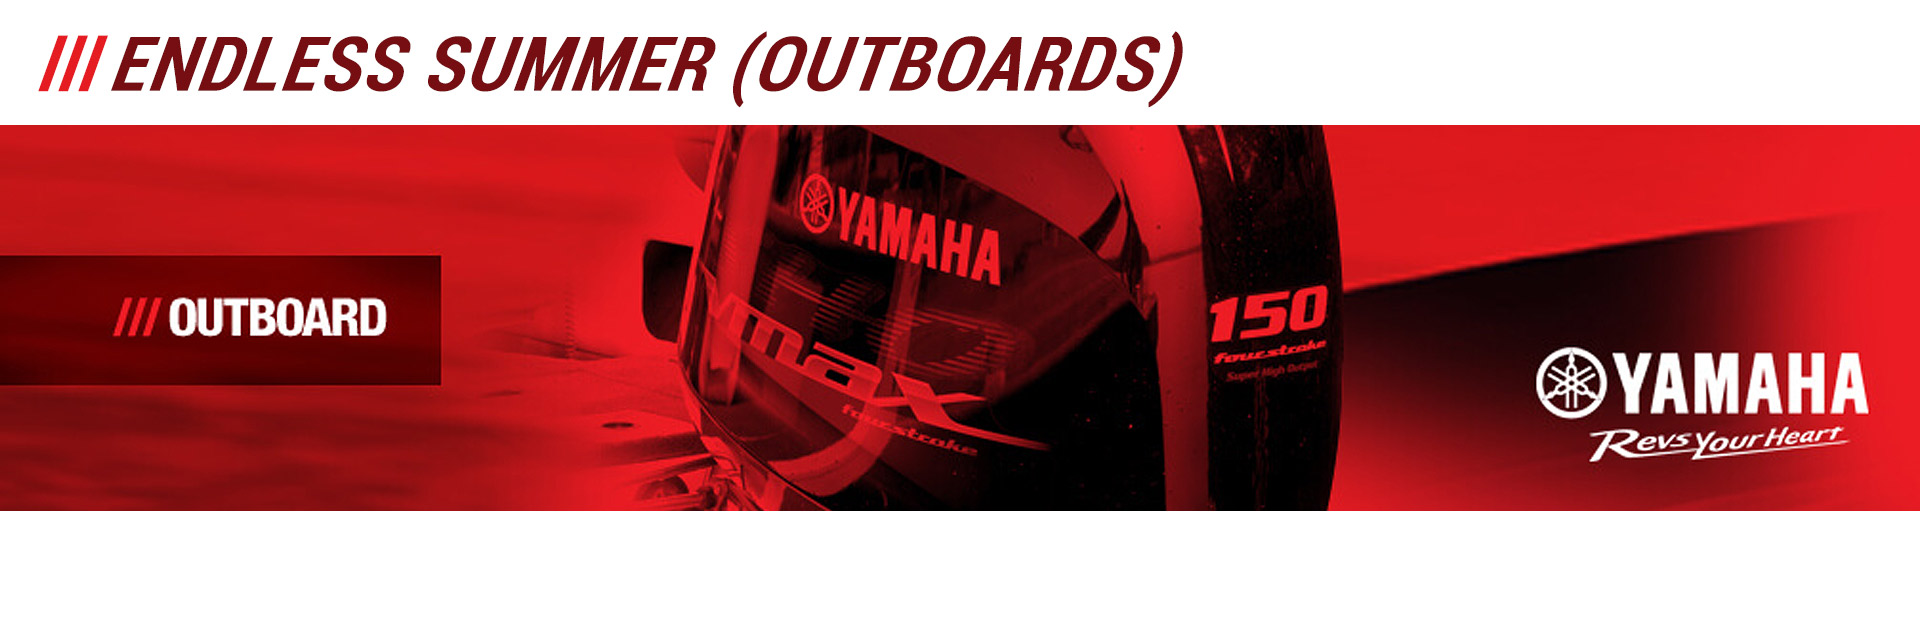 Yamaha: Endless Summer (Outboards)